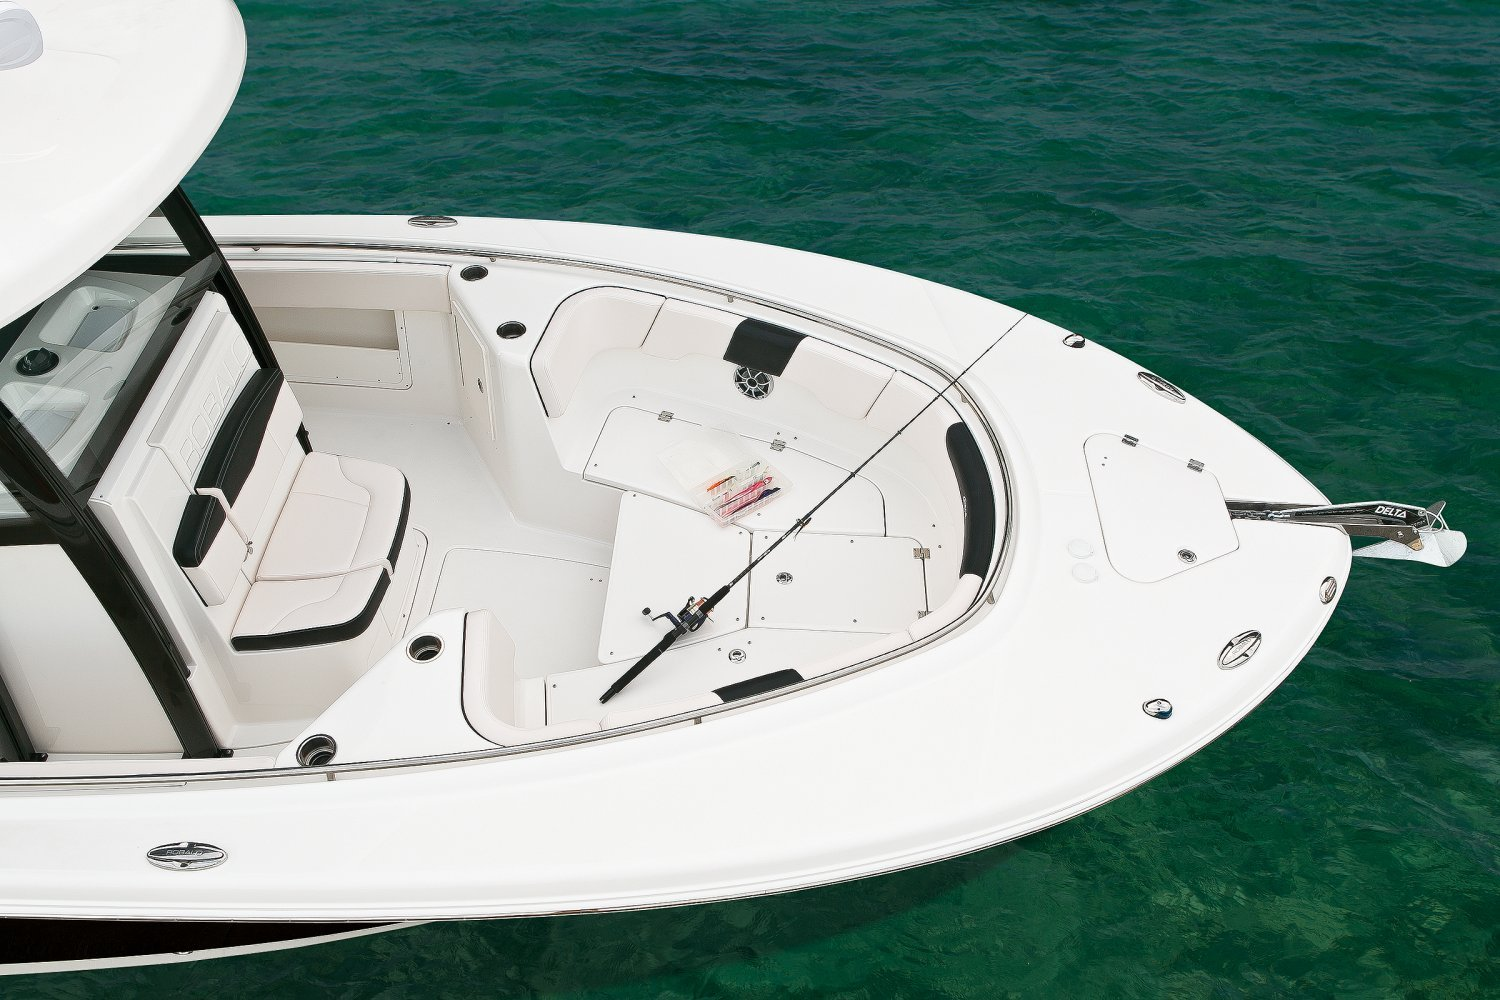 The Robalo R302 - Boat Connection